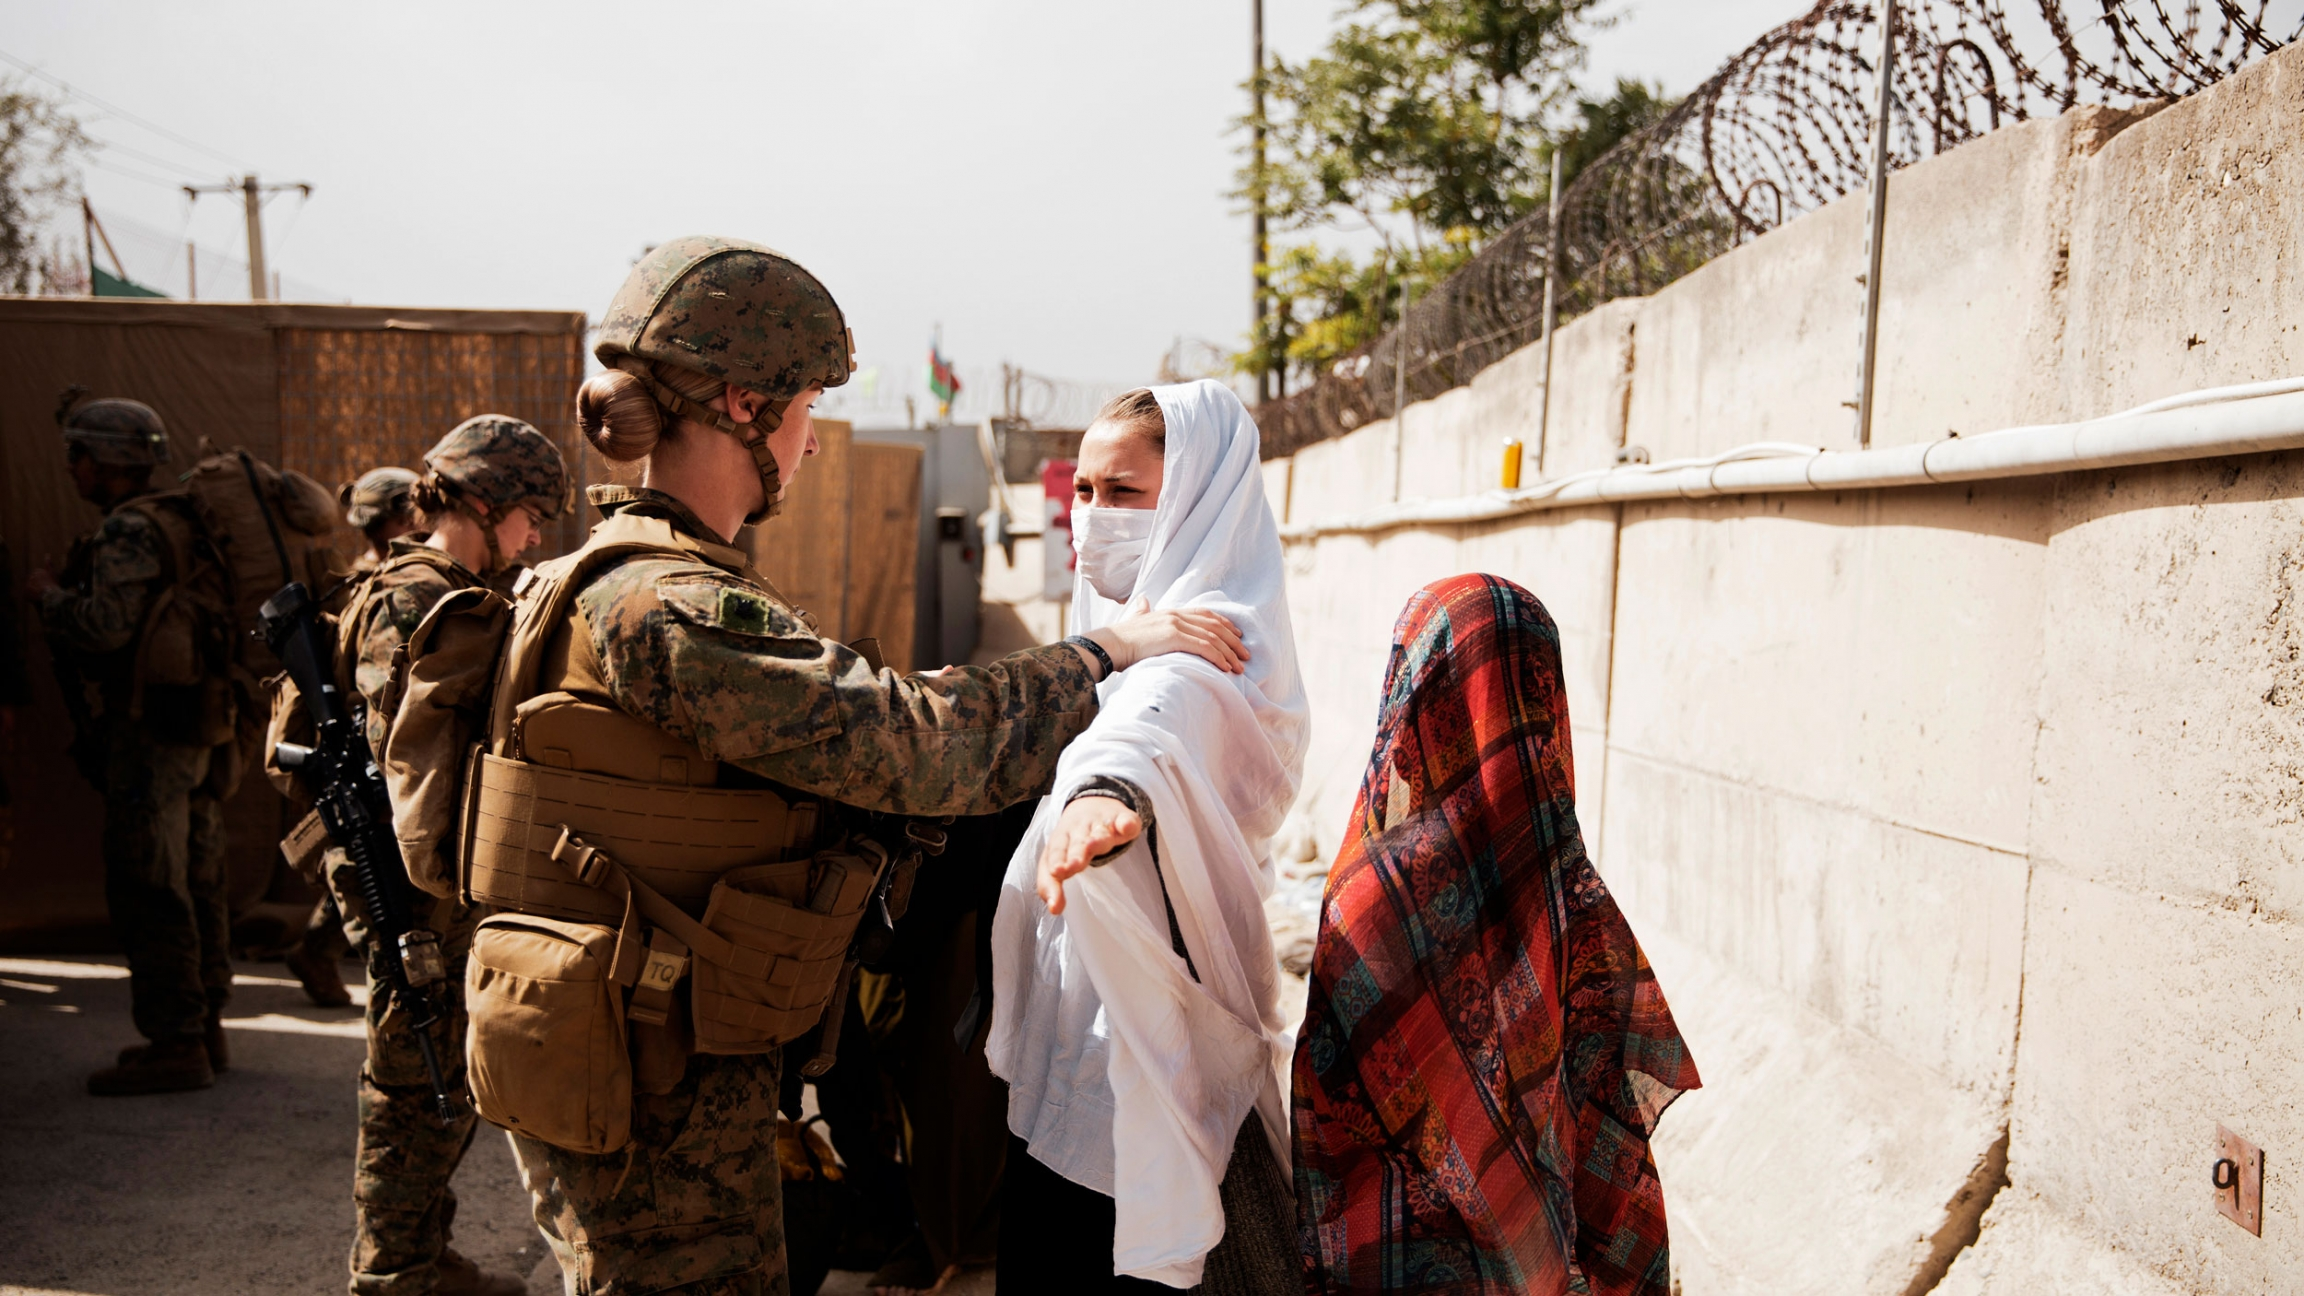 In this photo provided by the US Marine Corps, two civilians during processing through an Evacuee Control Checkpoint during an evacuation at Hamid Karzai International Airport, in Kabul, Afghanistan, Wednesday, Aug. 18, 2021.